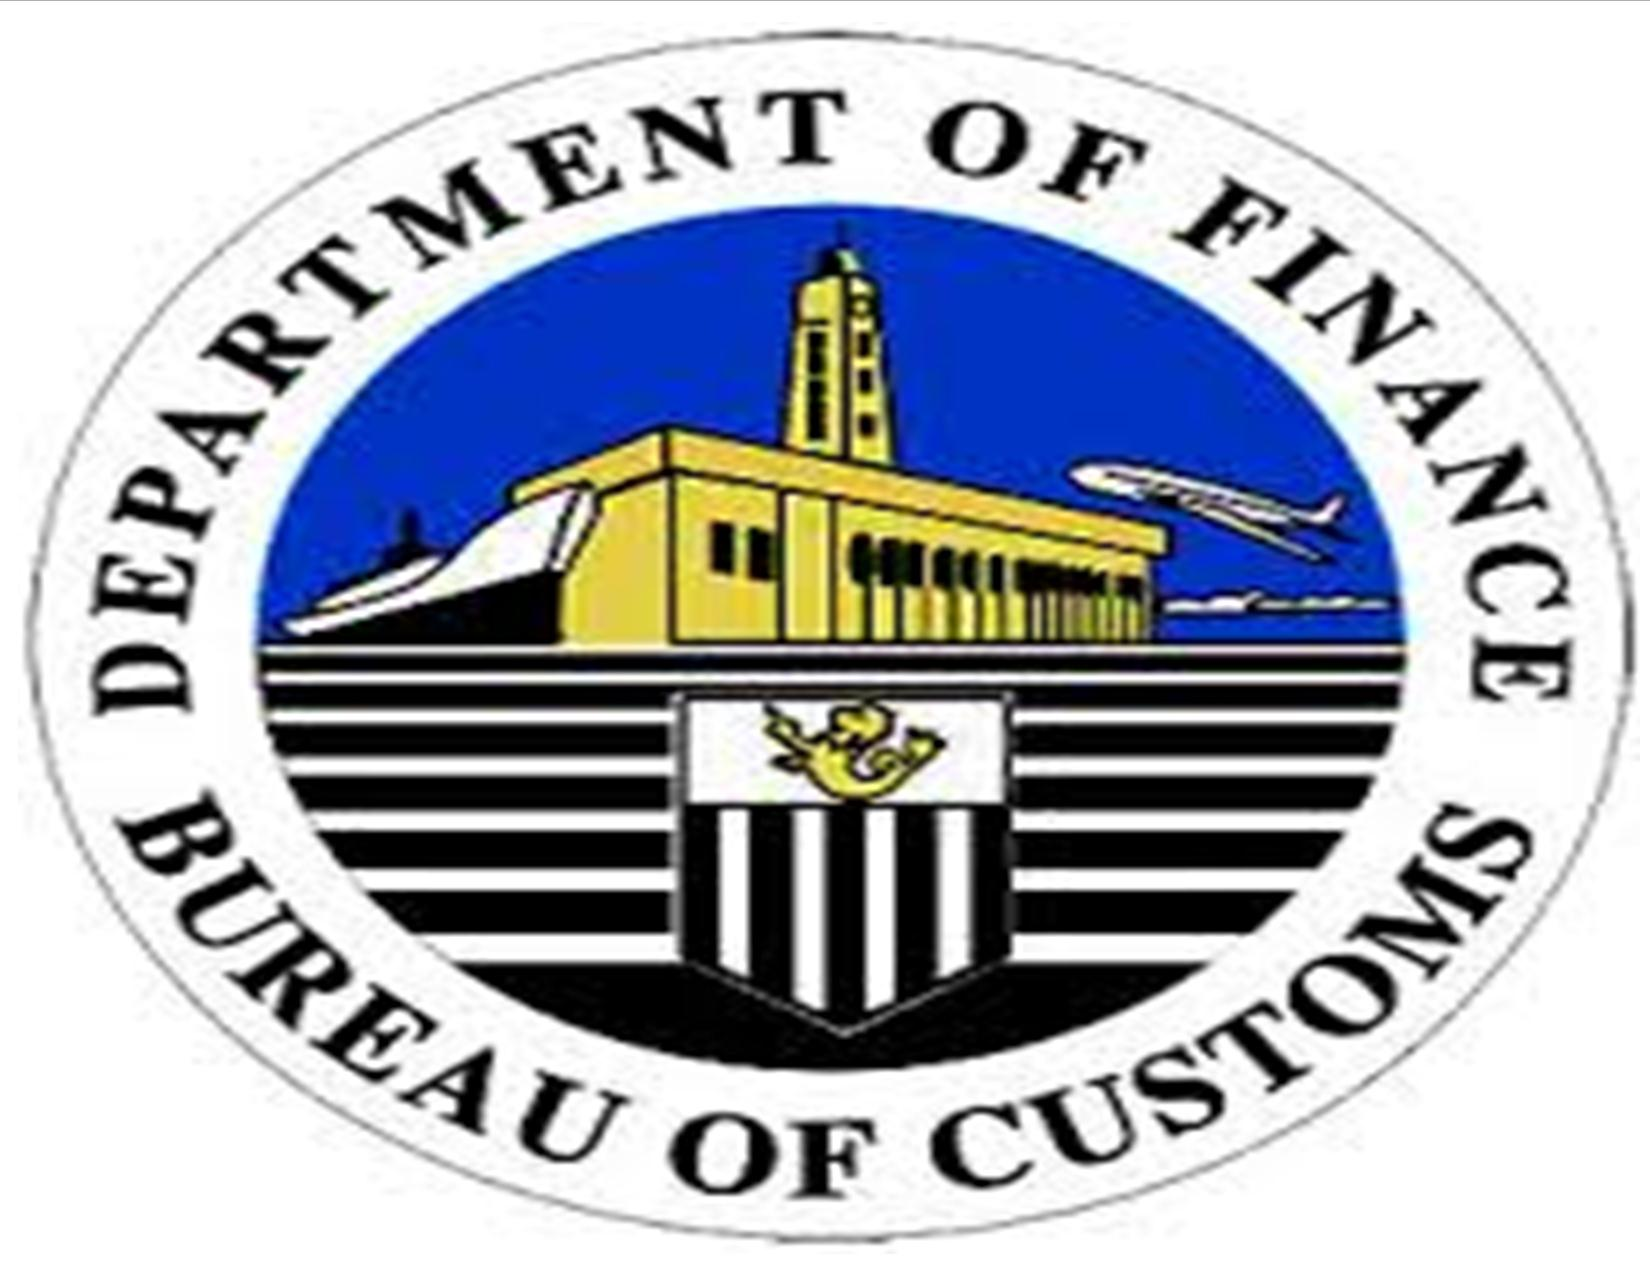 Bureau-of-Customs-Department-of-Finance